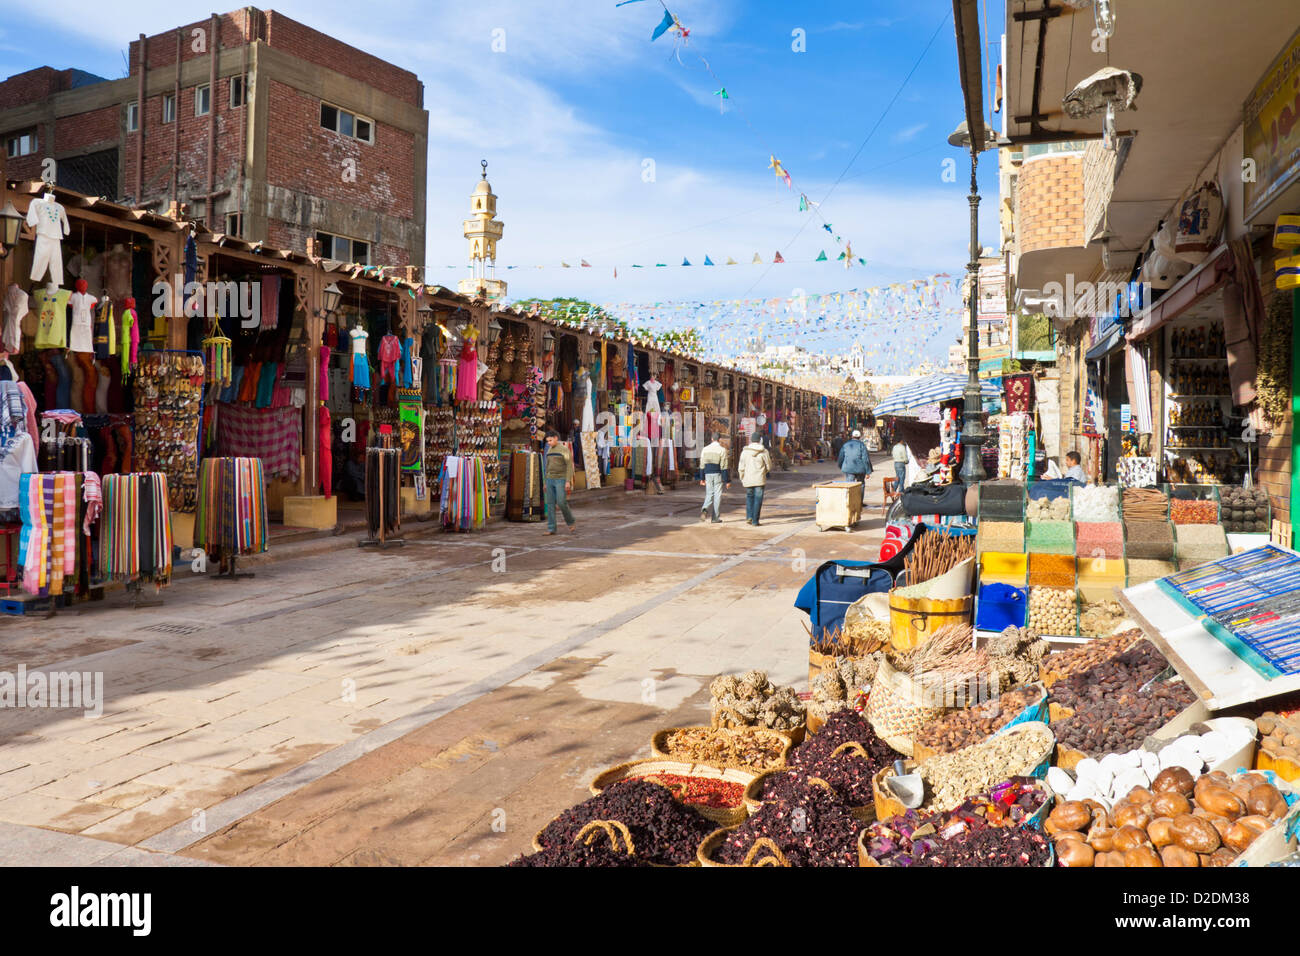 Market bazaar street scene with stalls selling spices dyes ...